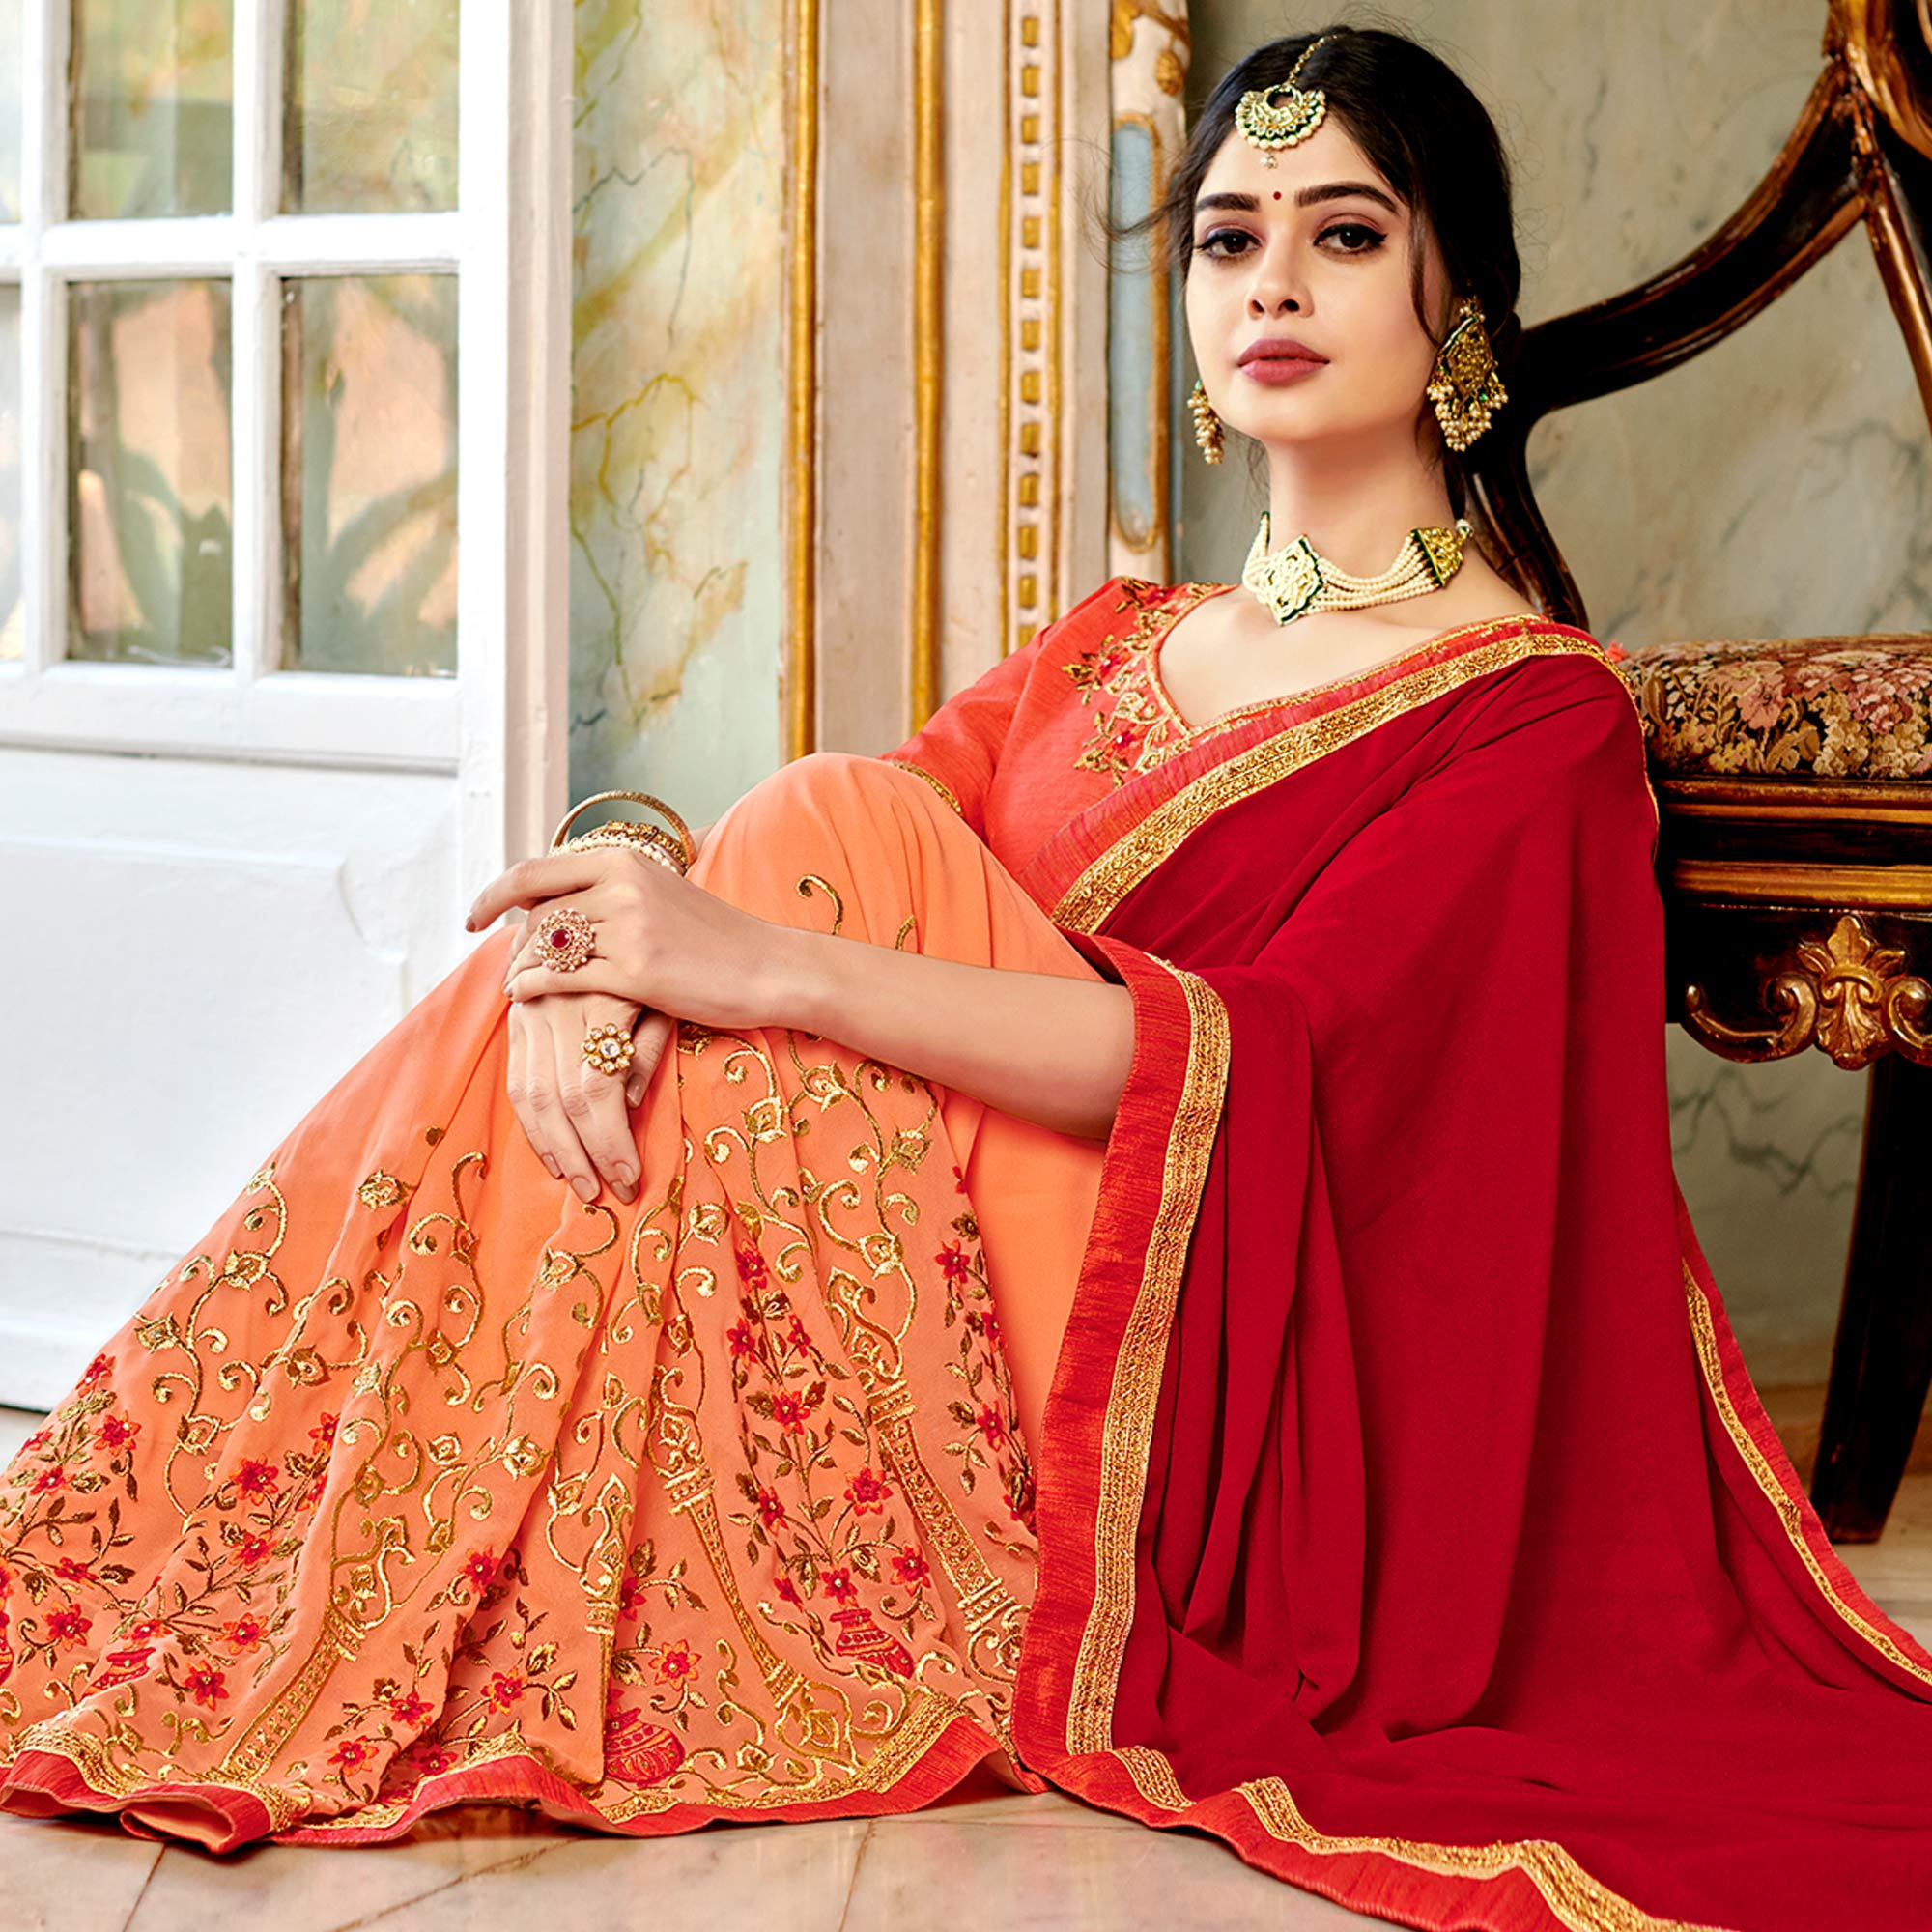 Majesty Peach-Red Colored Partywear Embroidered Georgette Half-Half Saree